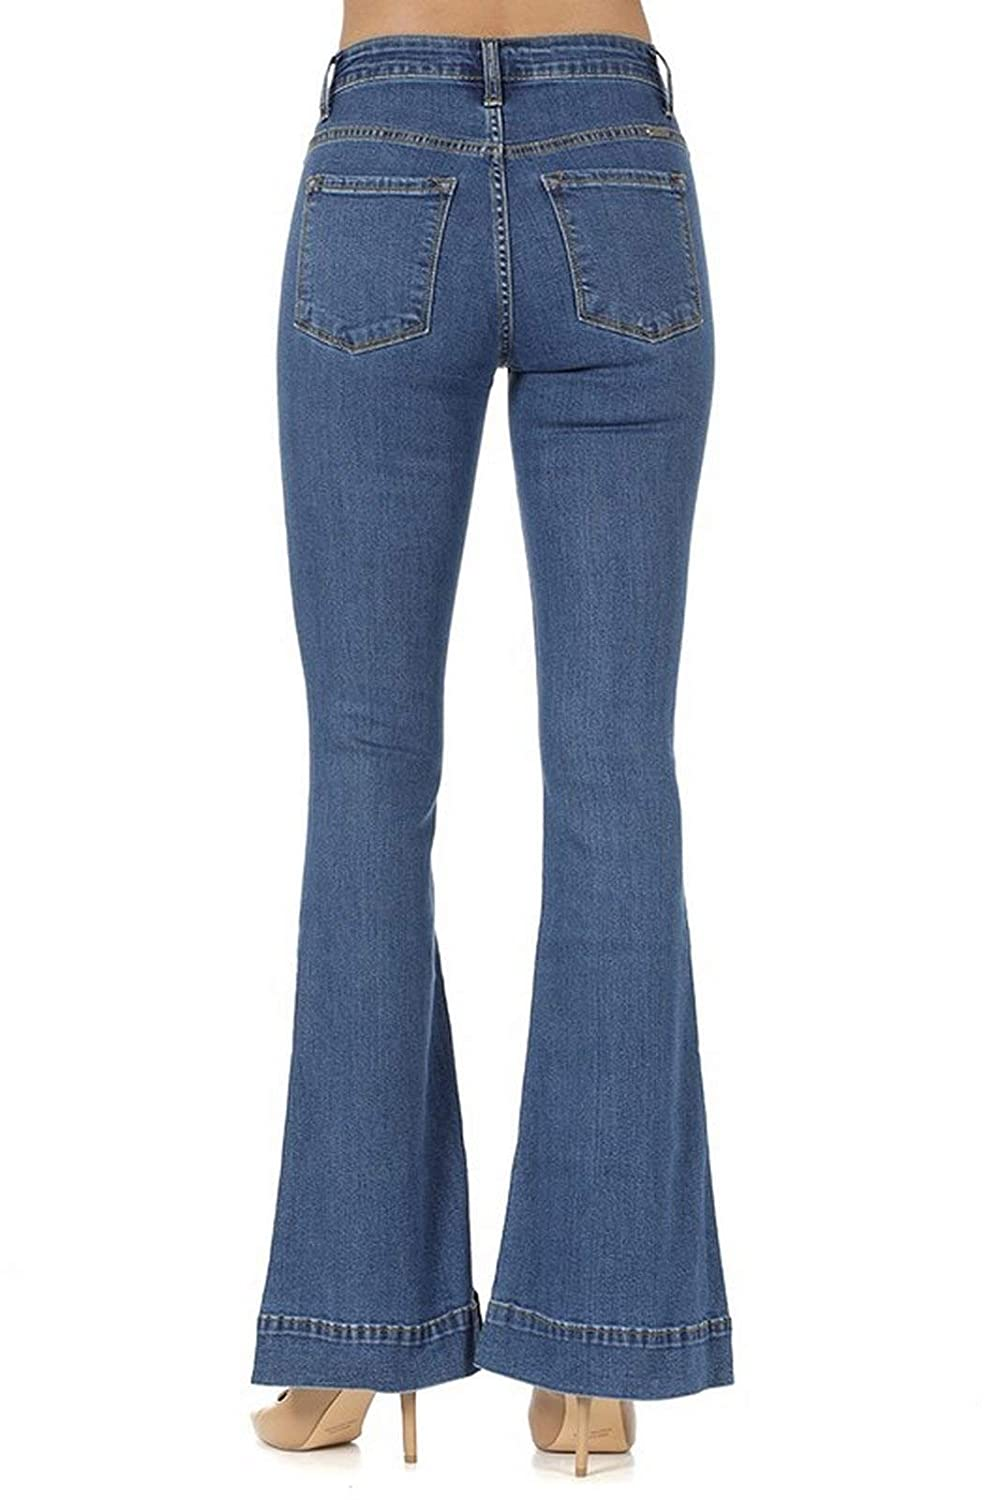 3ff94067033 KanCan Women s High Rise Flared Jeans KC8411 at Amazon Women s Jeans store